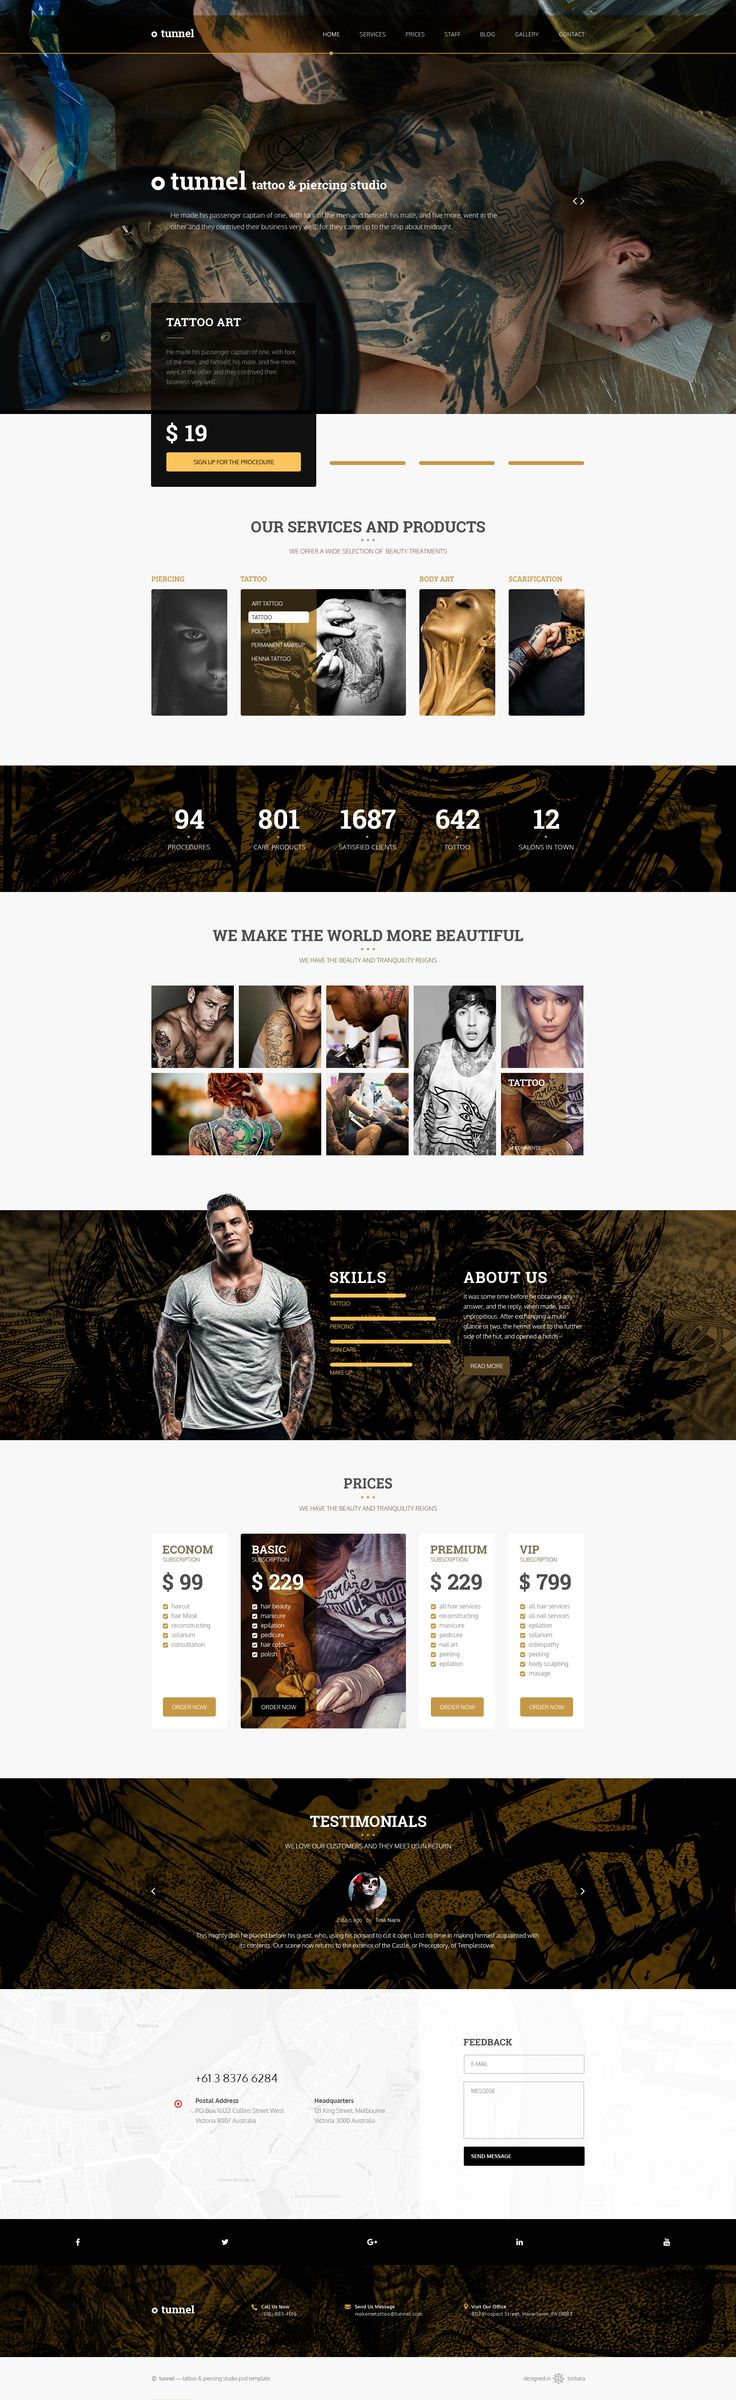 Tunnel — Modern Tattoo and Piercing Studio PSD Template • Download ➝ https://themeforest.net/item/tunnel-modern-tattoo-and-piercing-studio-psd-template/15934355?ref=pxcr